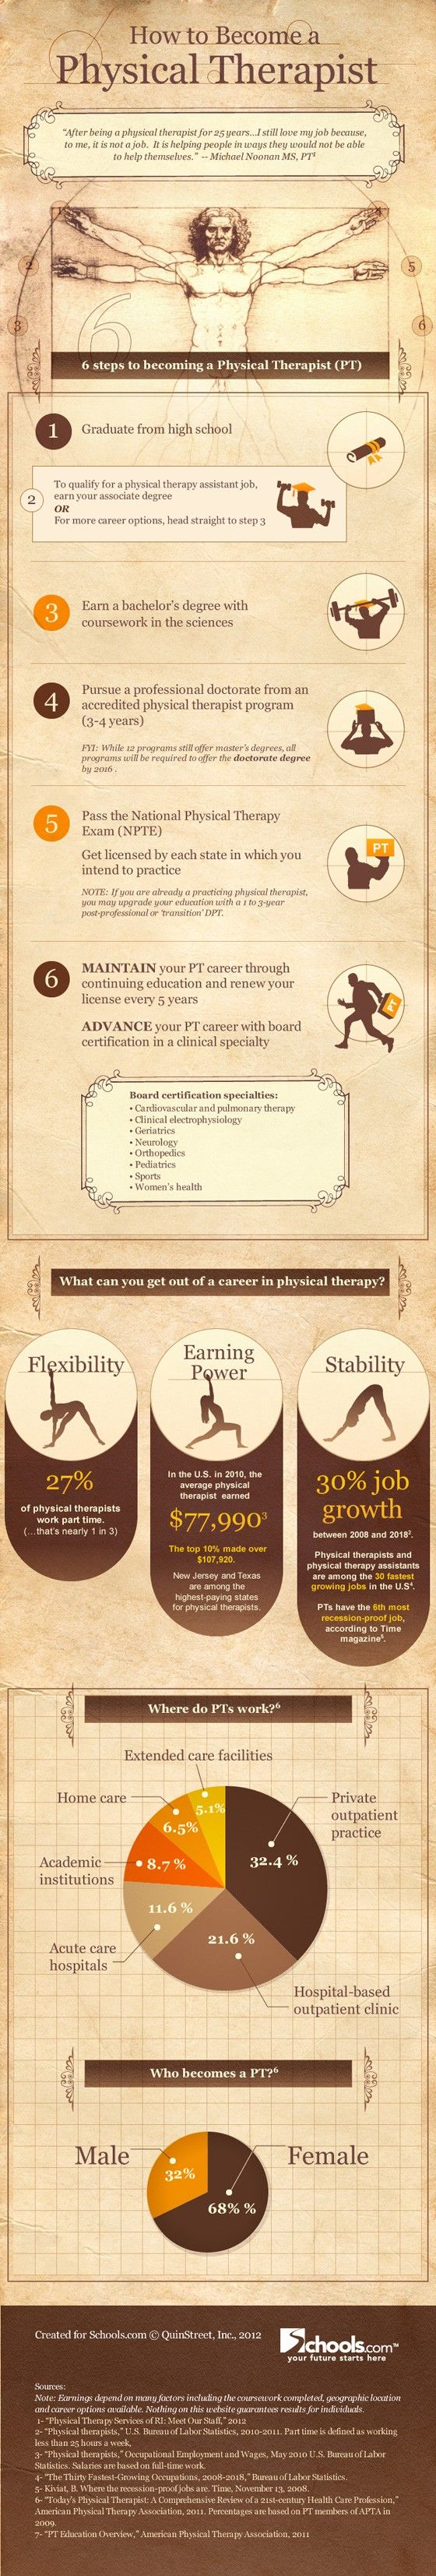 Cómo hacerse fisioterapeuta (USA) #infografia #infographic #health #education